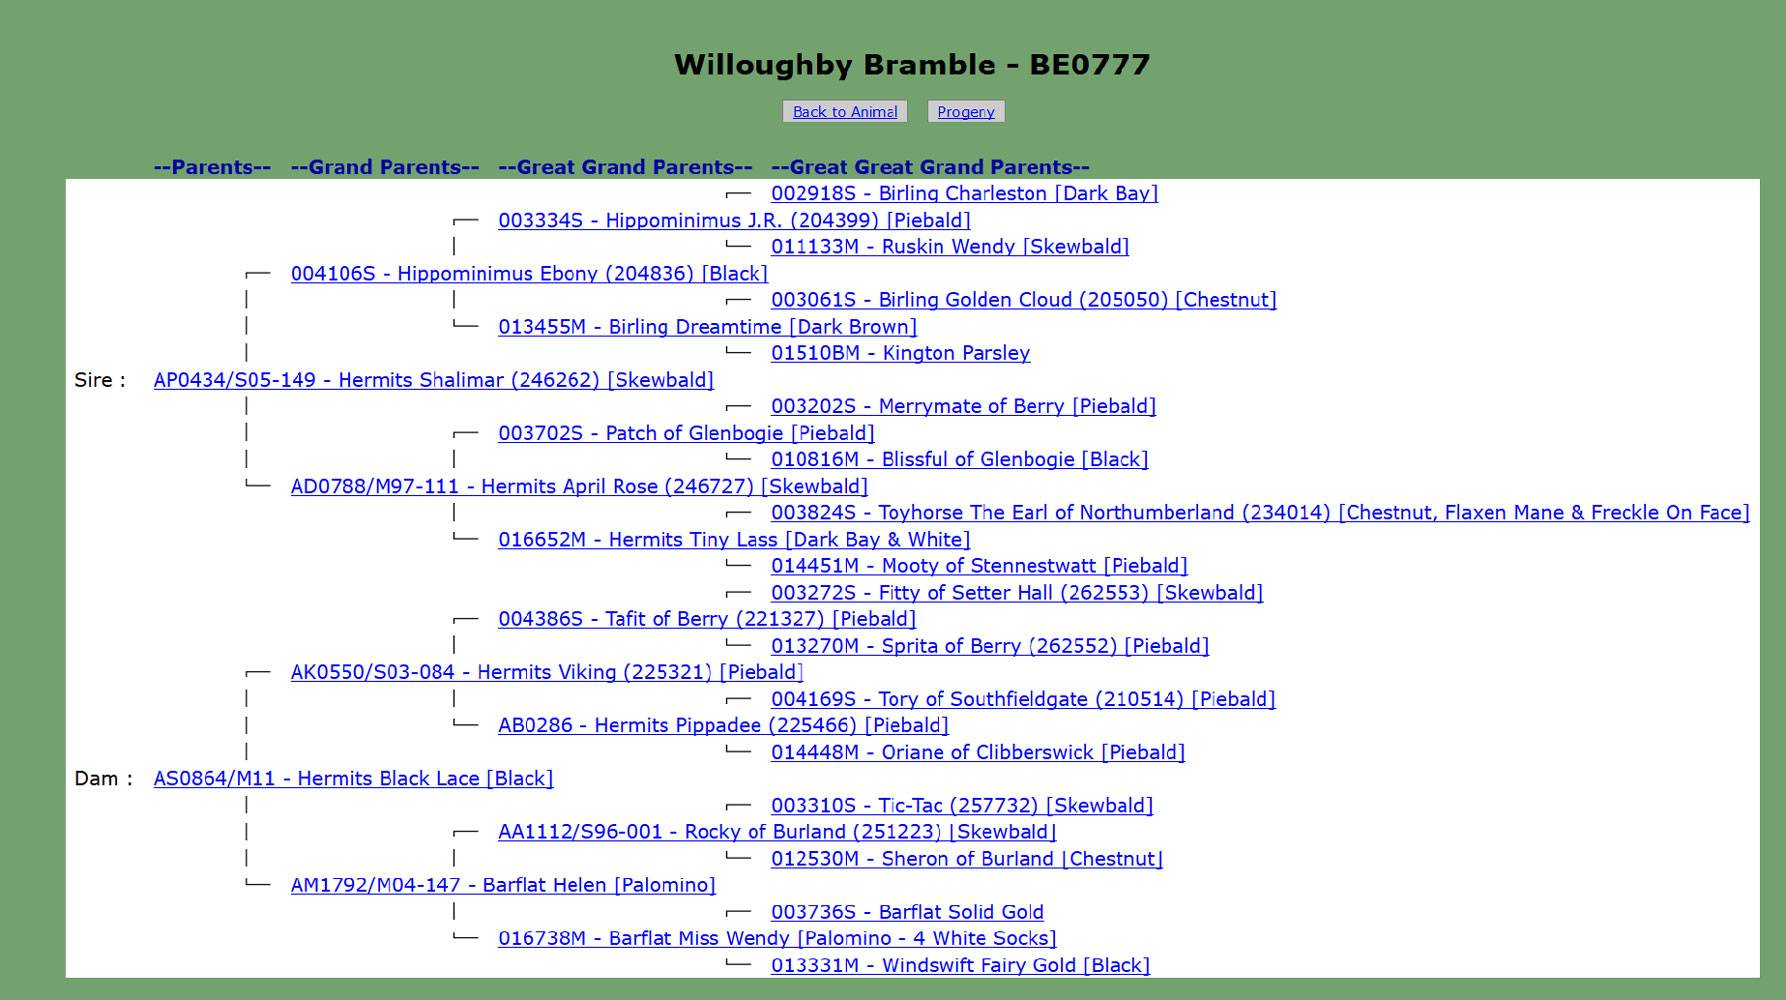 Pedigree von Willoughby Bramble